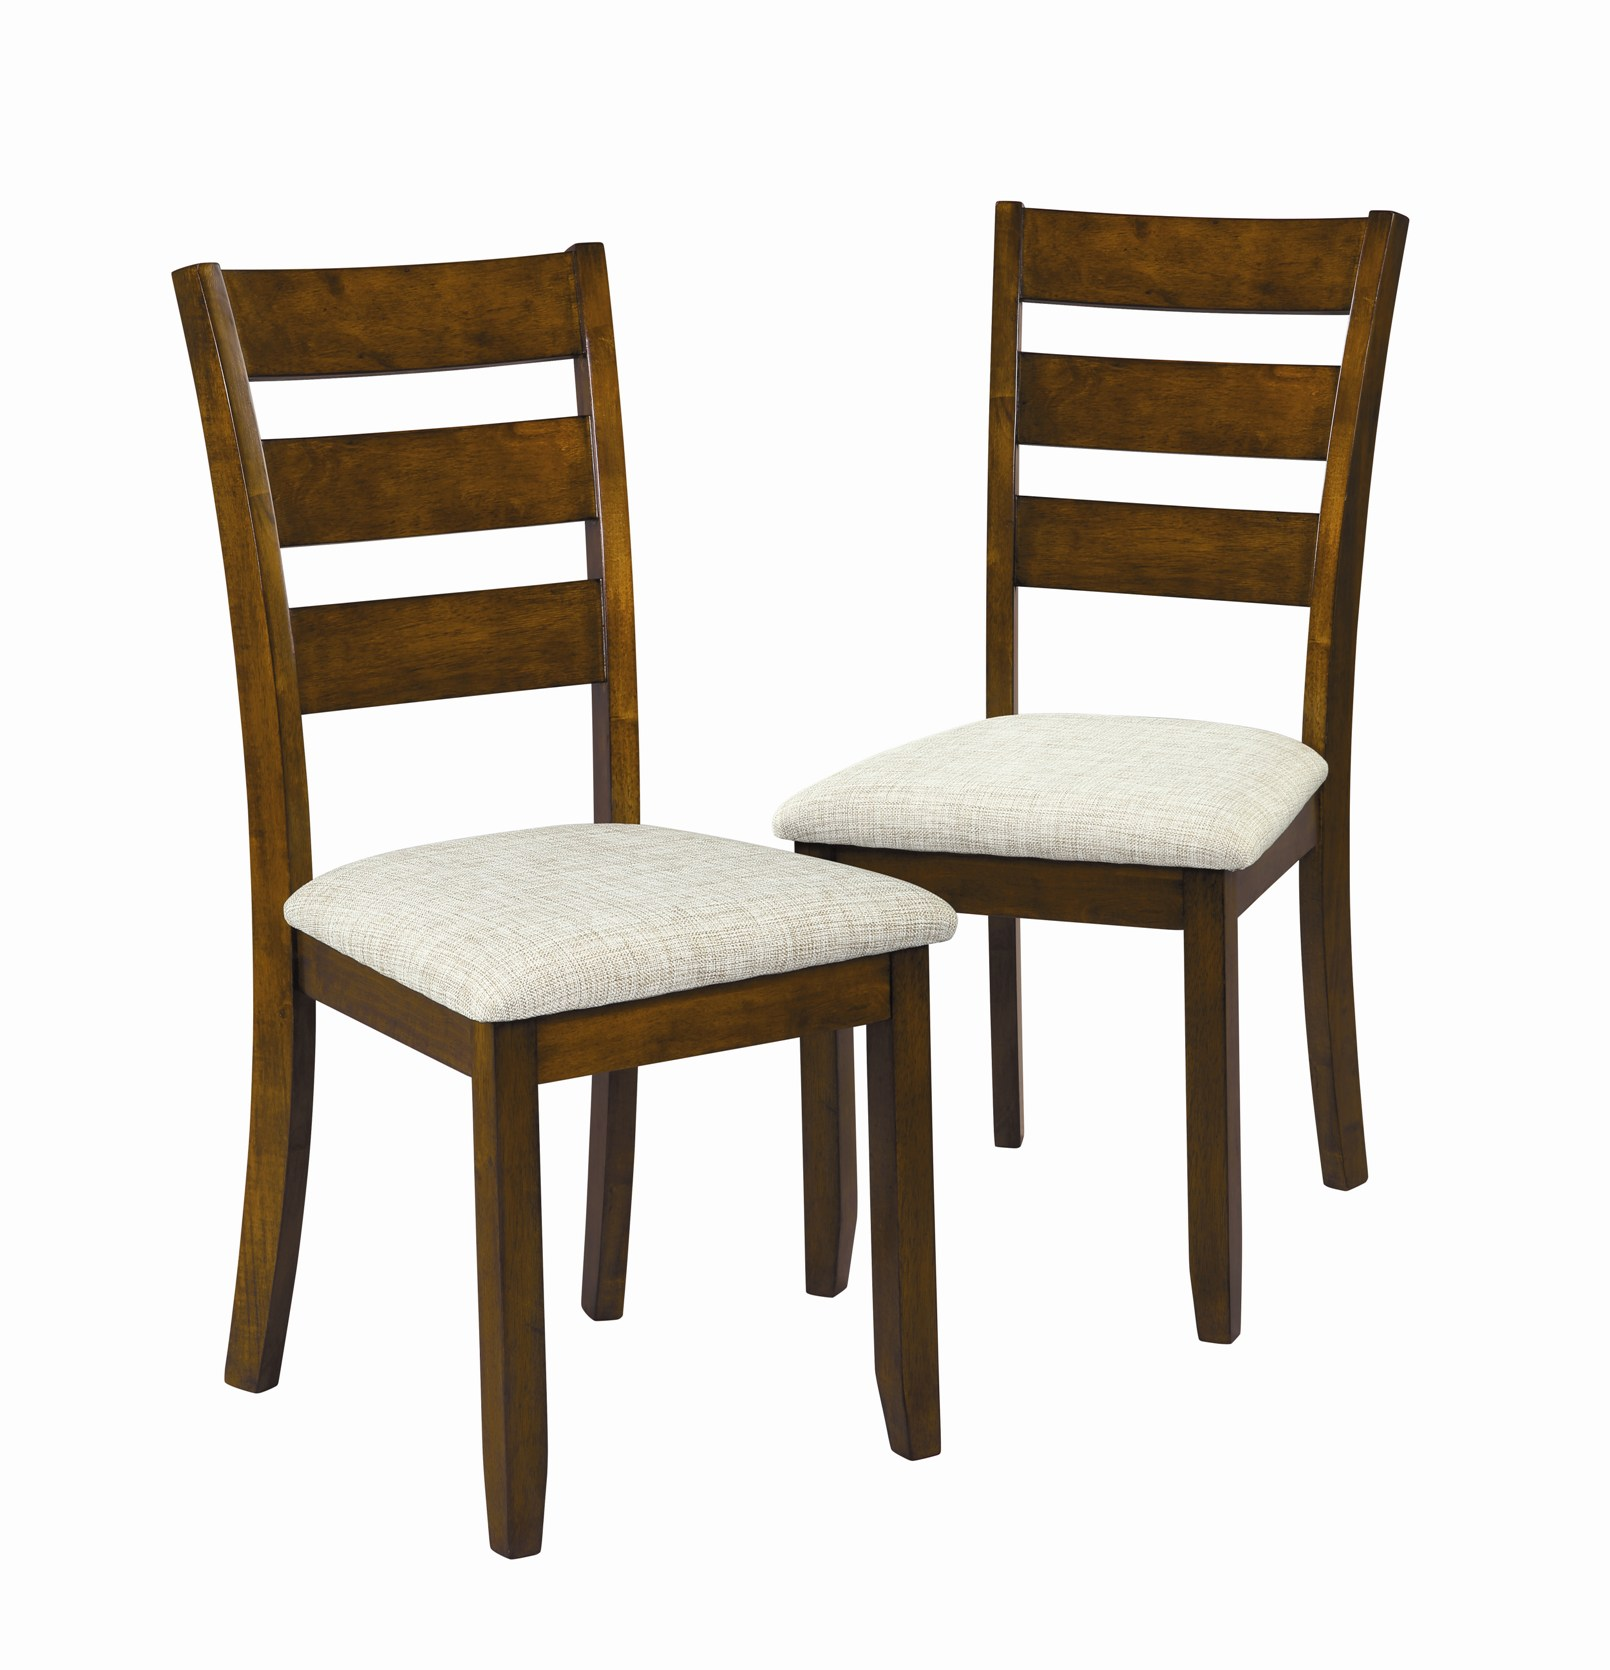 bistro table and chairs kmart stool chair homemade essential home set of 2 glenview dining